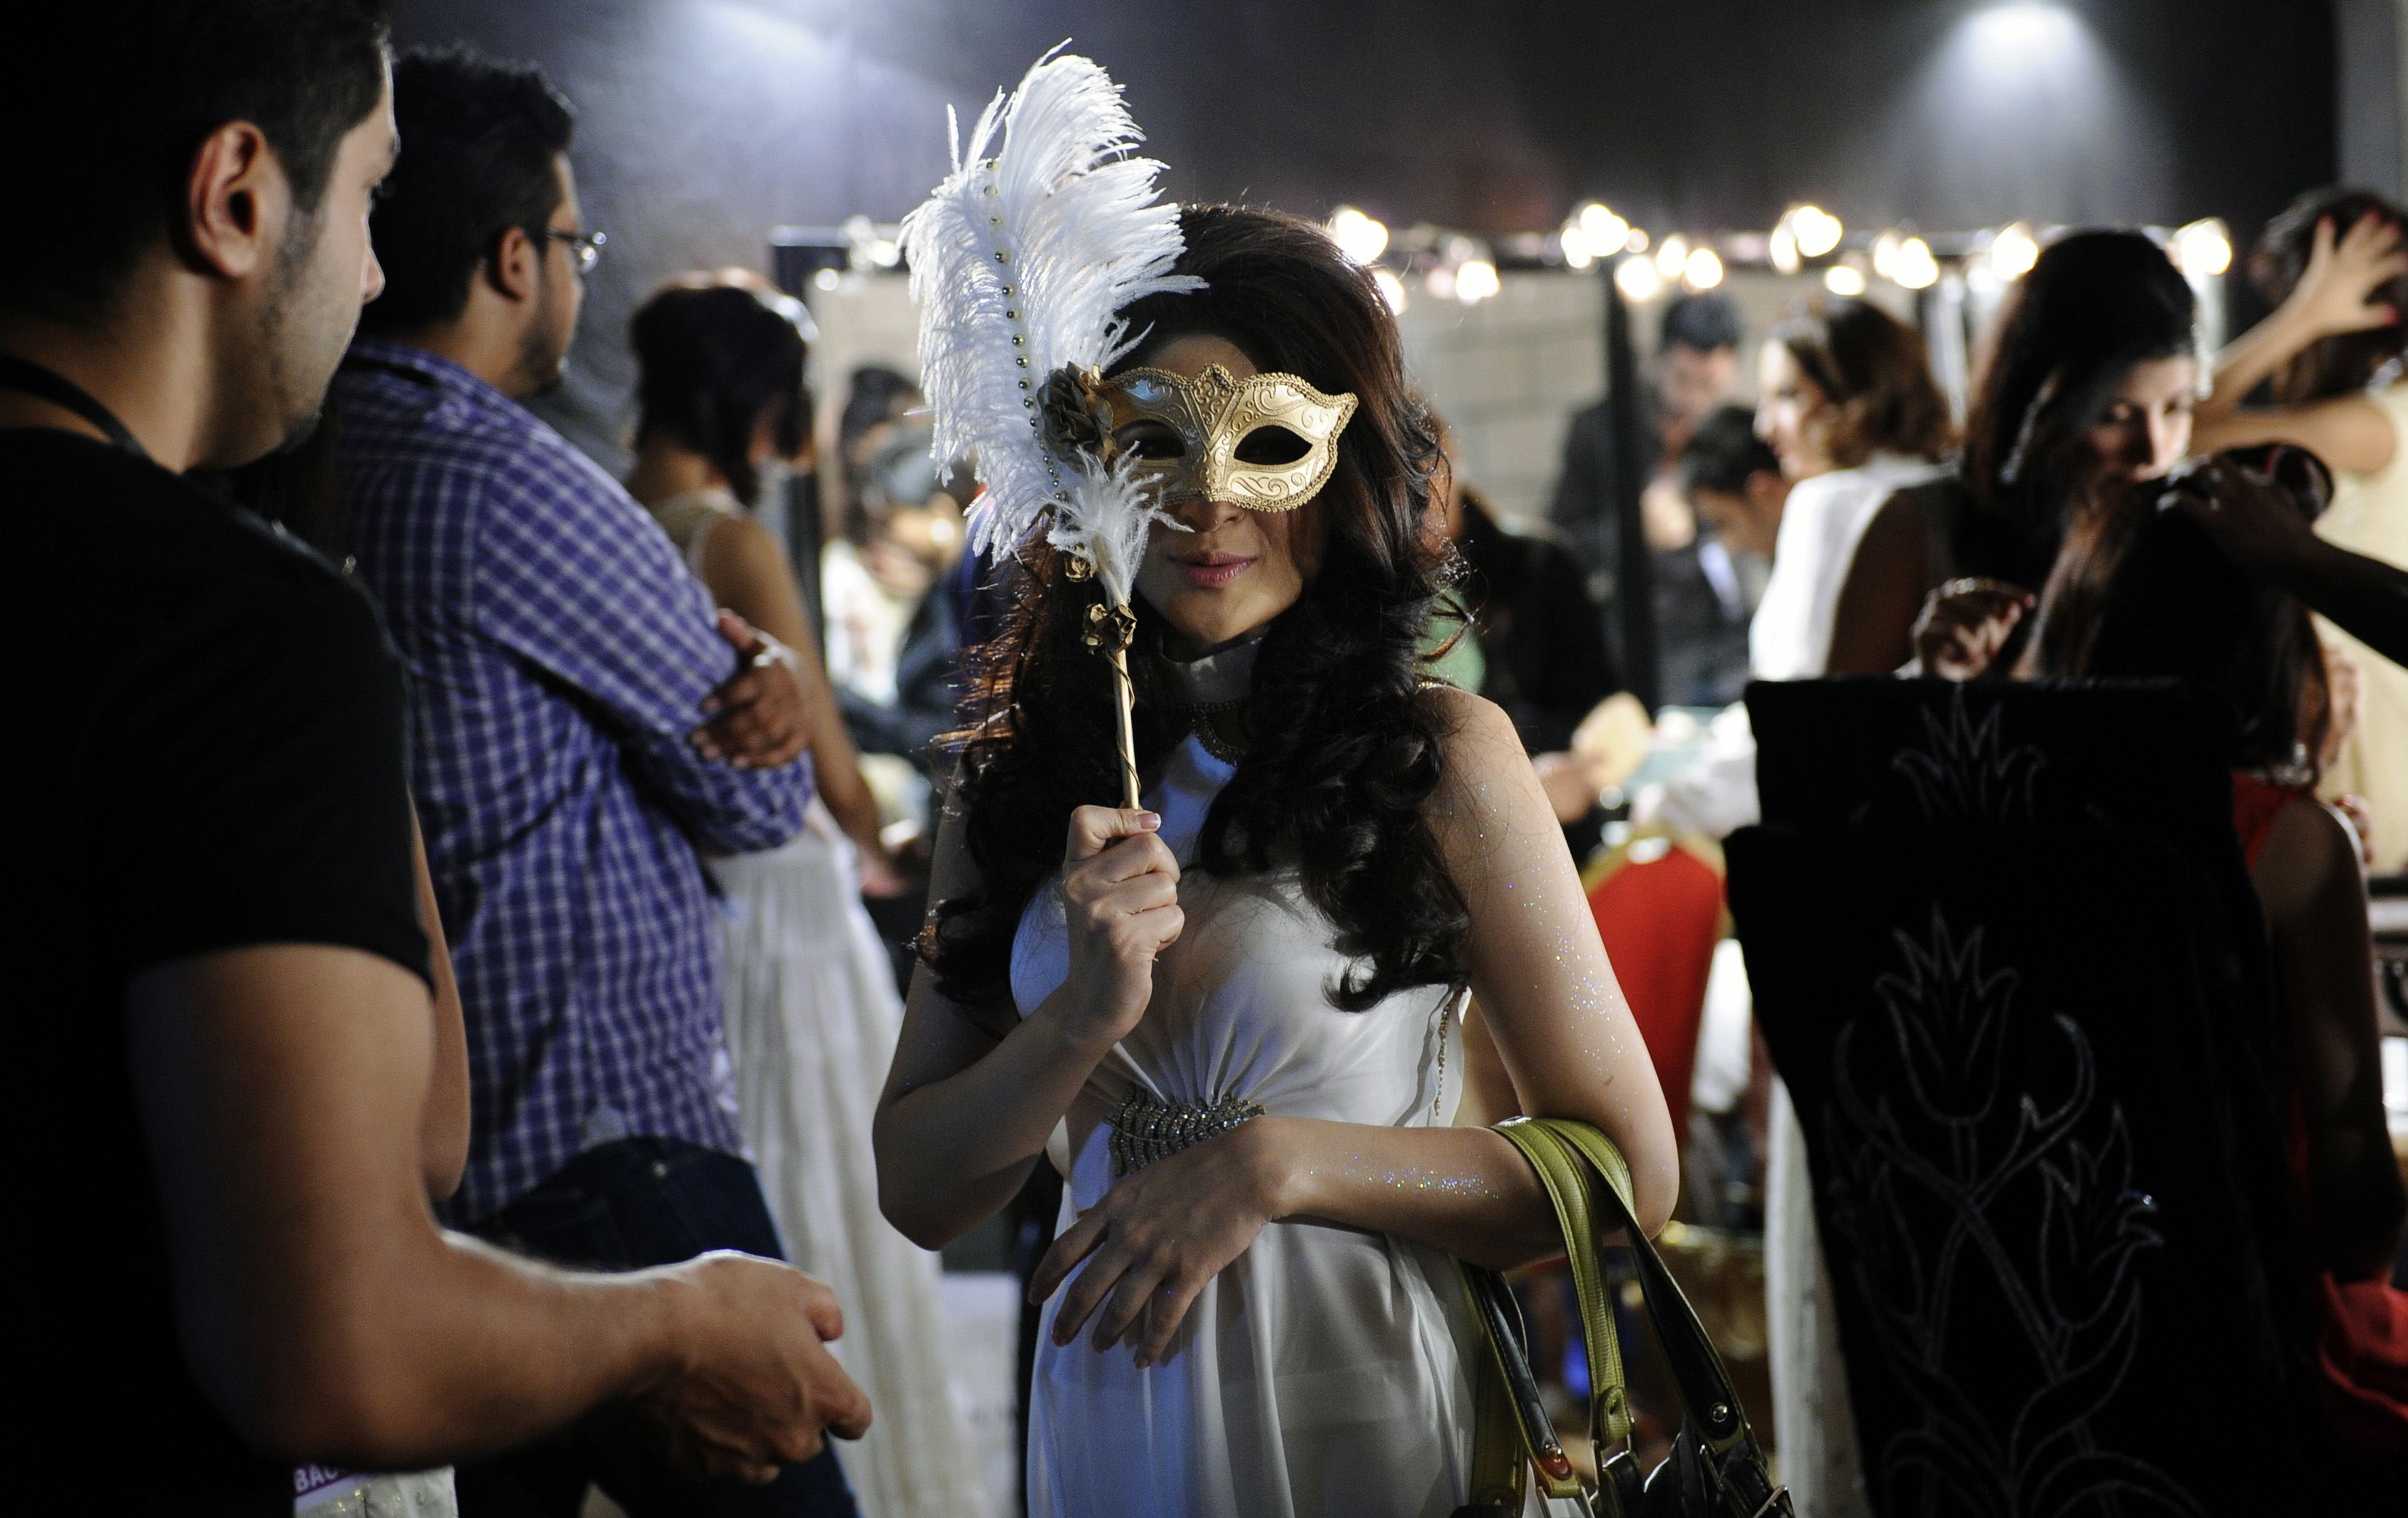 Model Ayesha, wears a mask as part of the hair and makeup show as she prepares to take to the catwalk on the first day of the Bridal Couture Week in Karachi April 19, 2013. The event will be held from April 19 to 21. — Reuters Photo